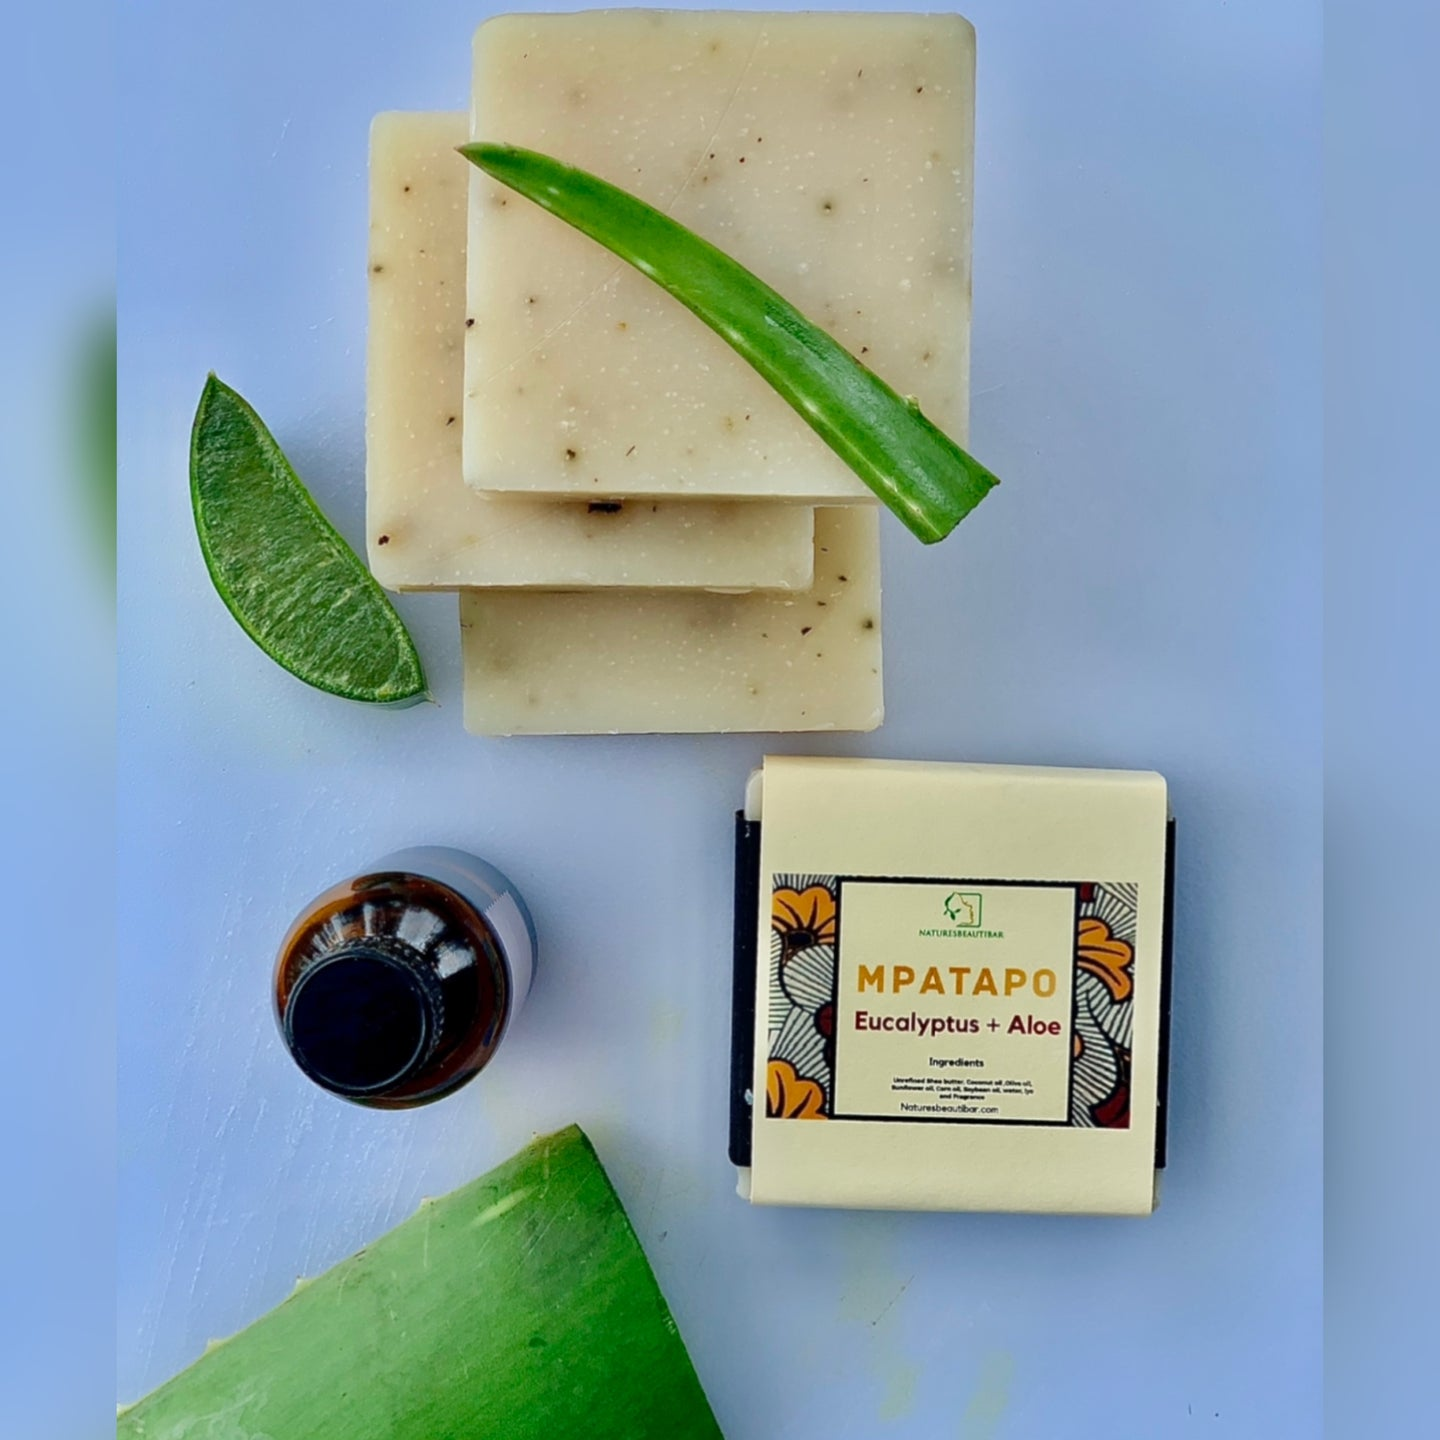 Mpatapo Soothing Eucalyptus + Aloe Natural Soap Bar